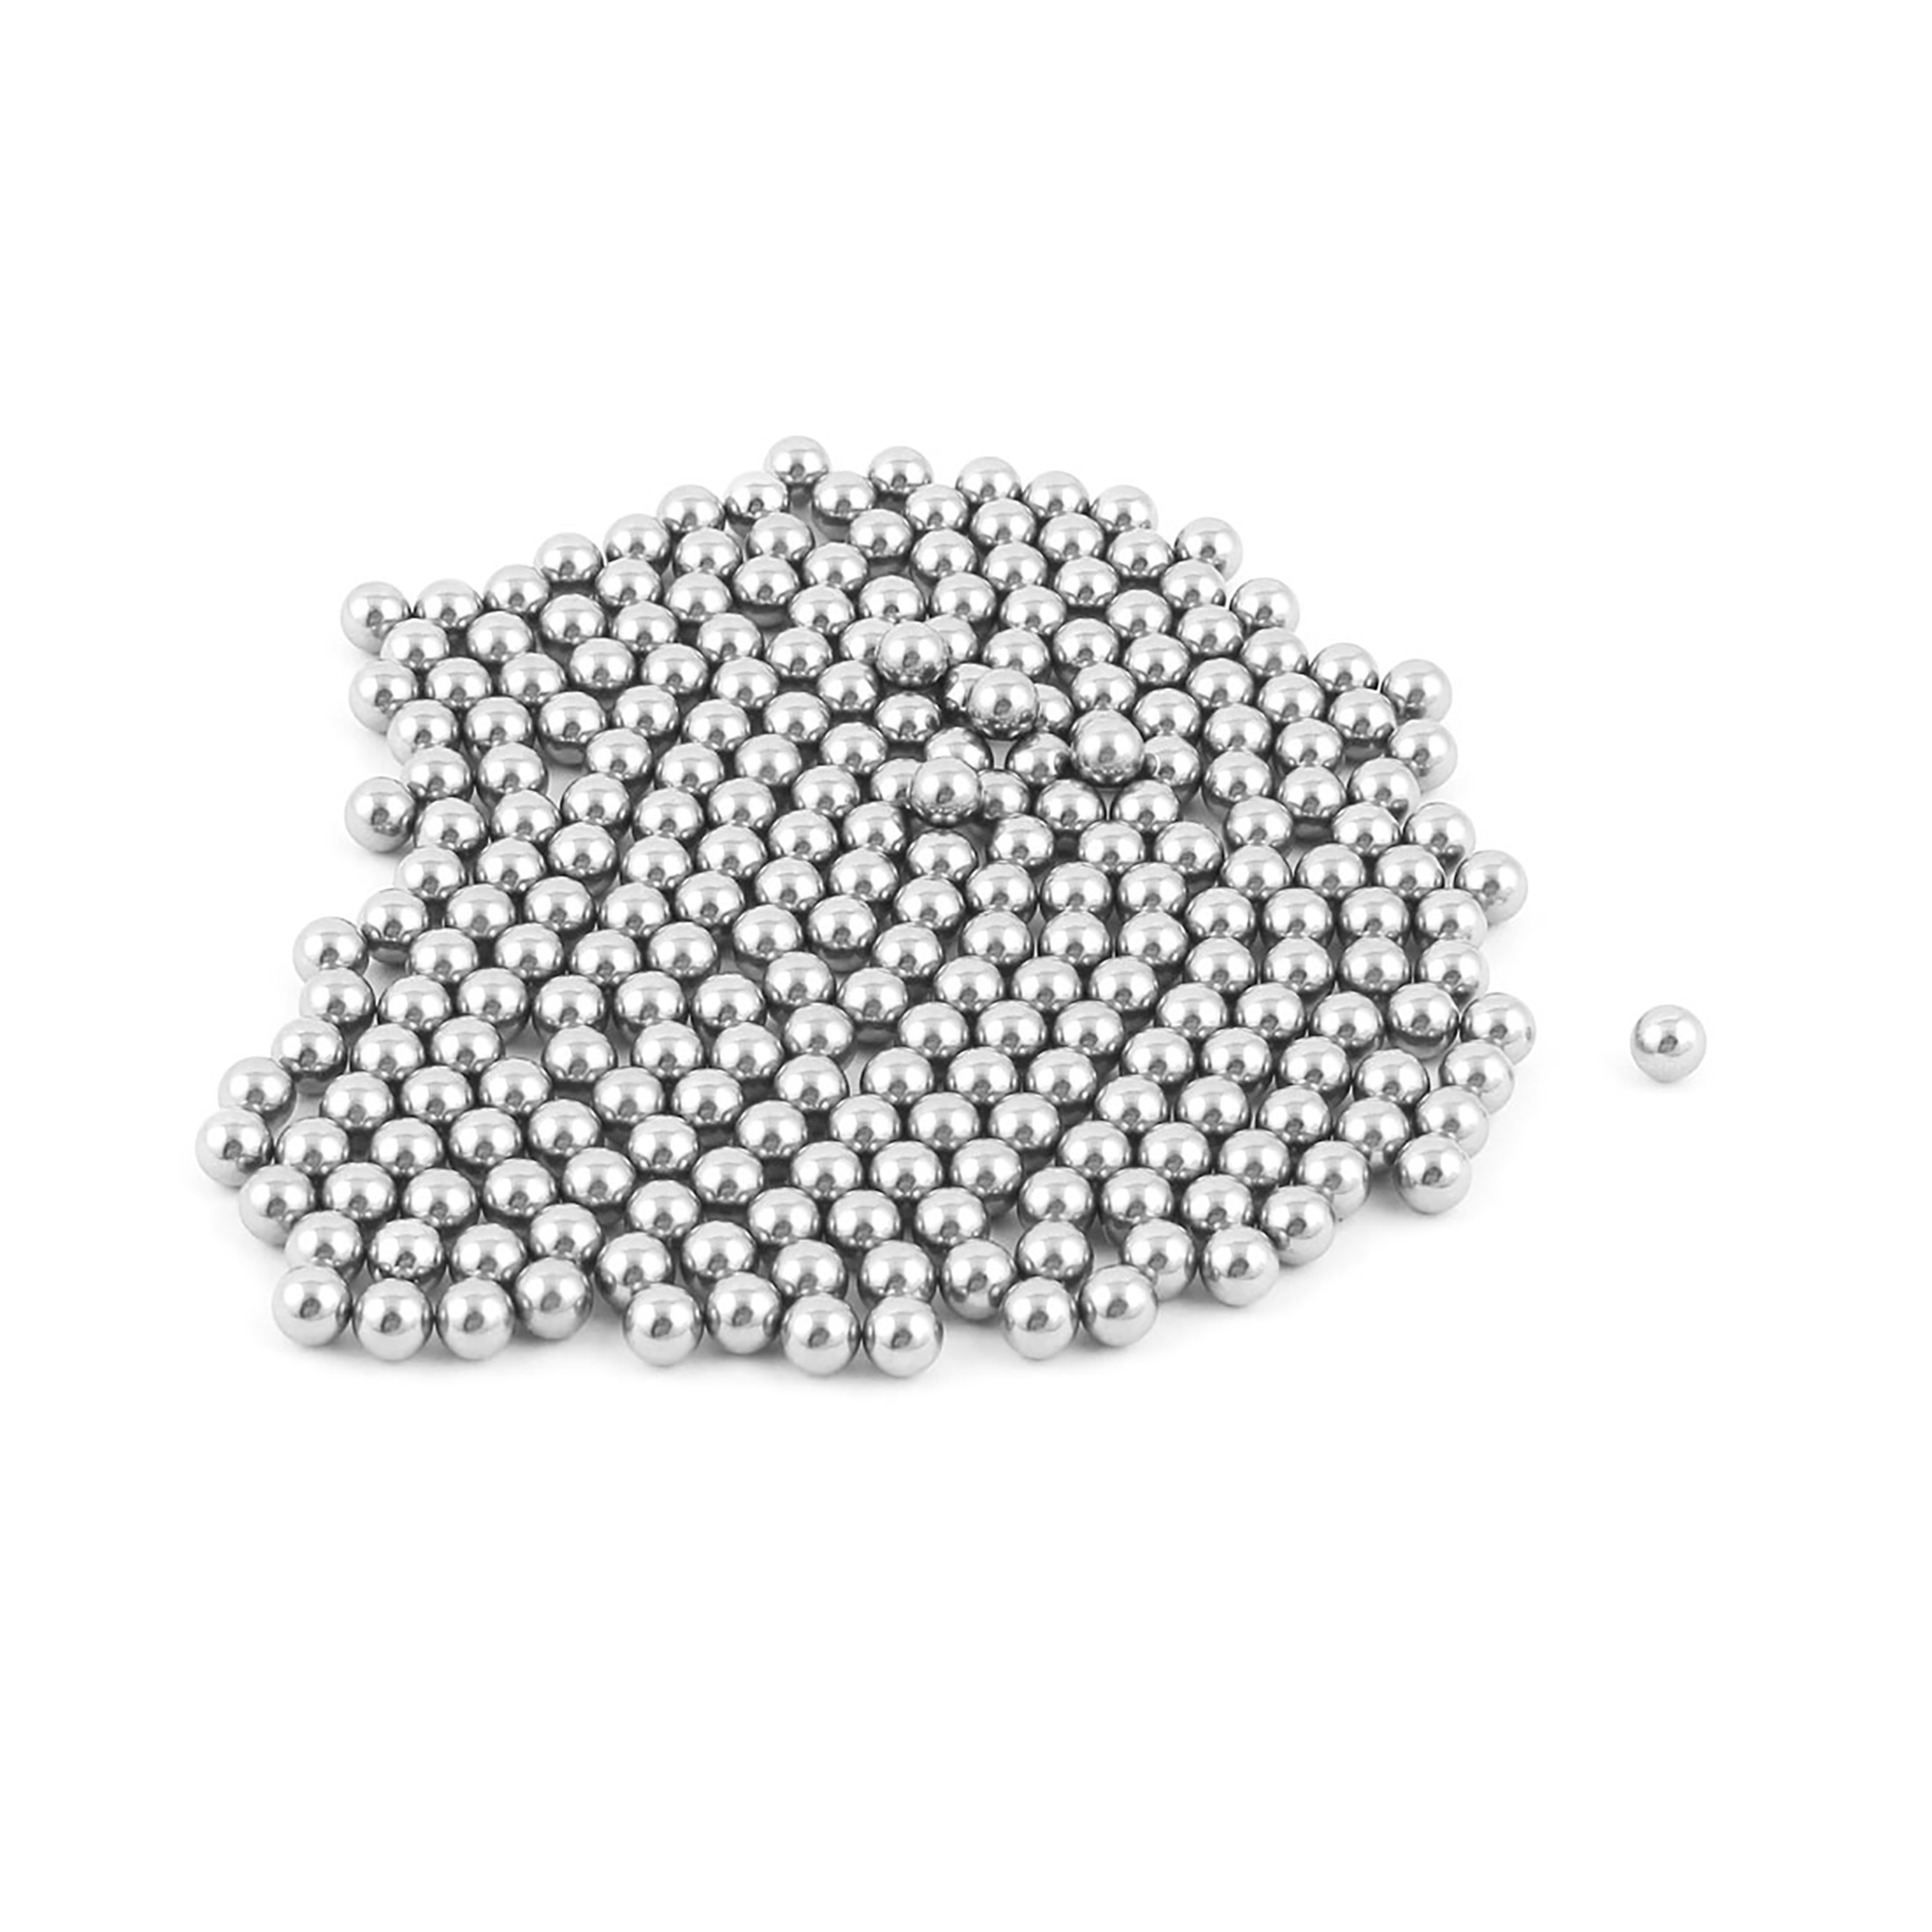 210 Pcs 6mm Diameter Bike Bicyle Steel Ball Bearings Parts